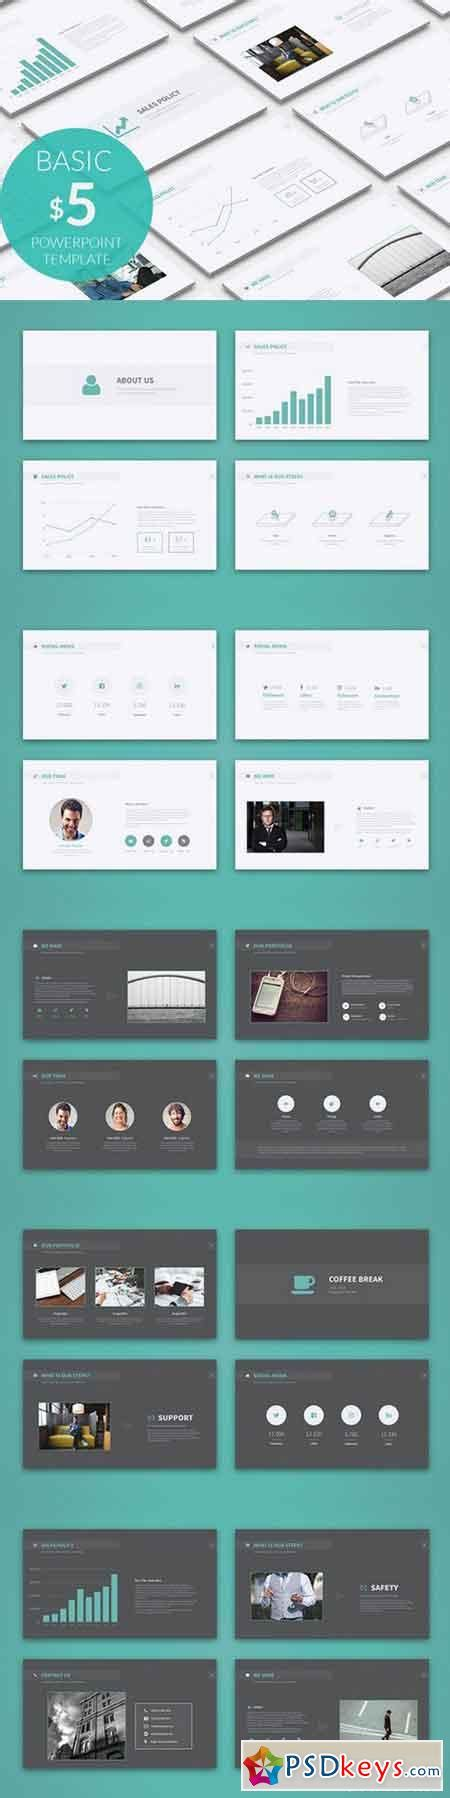 basic powerpoint template 1020552 187 free download